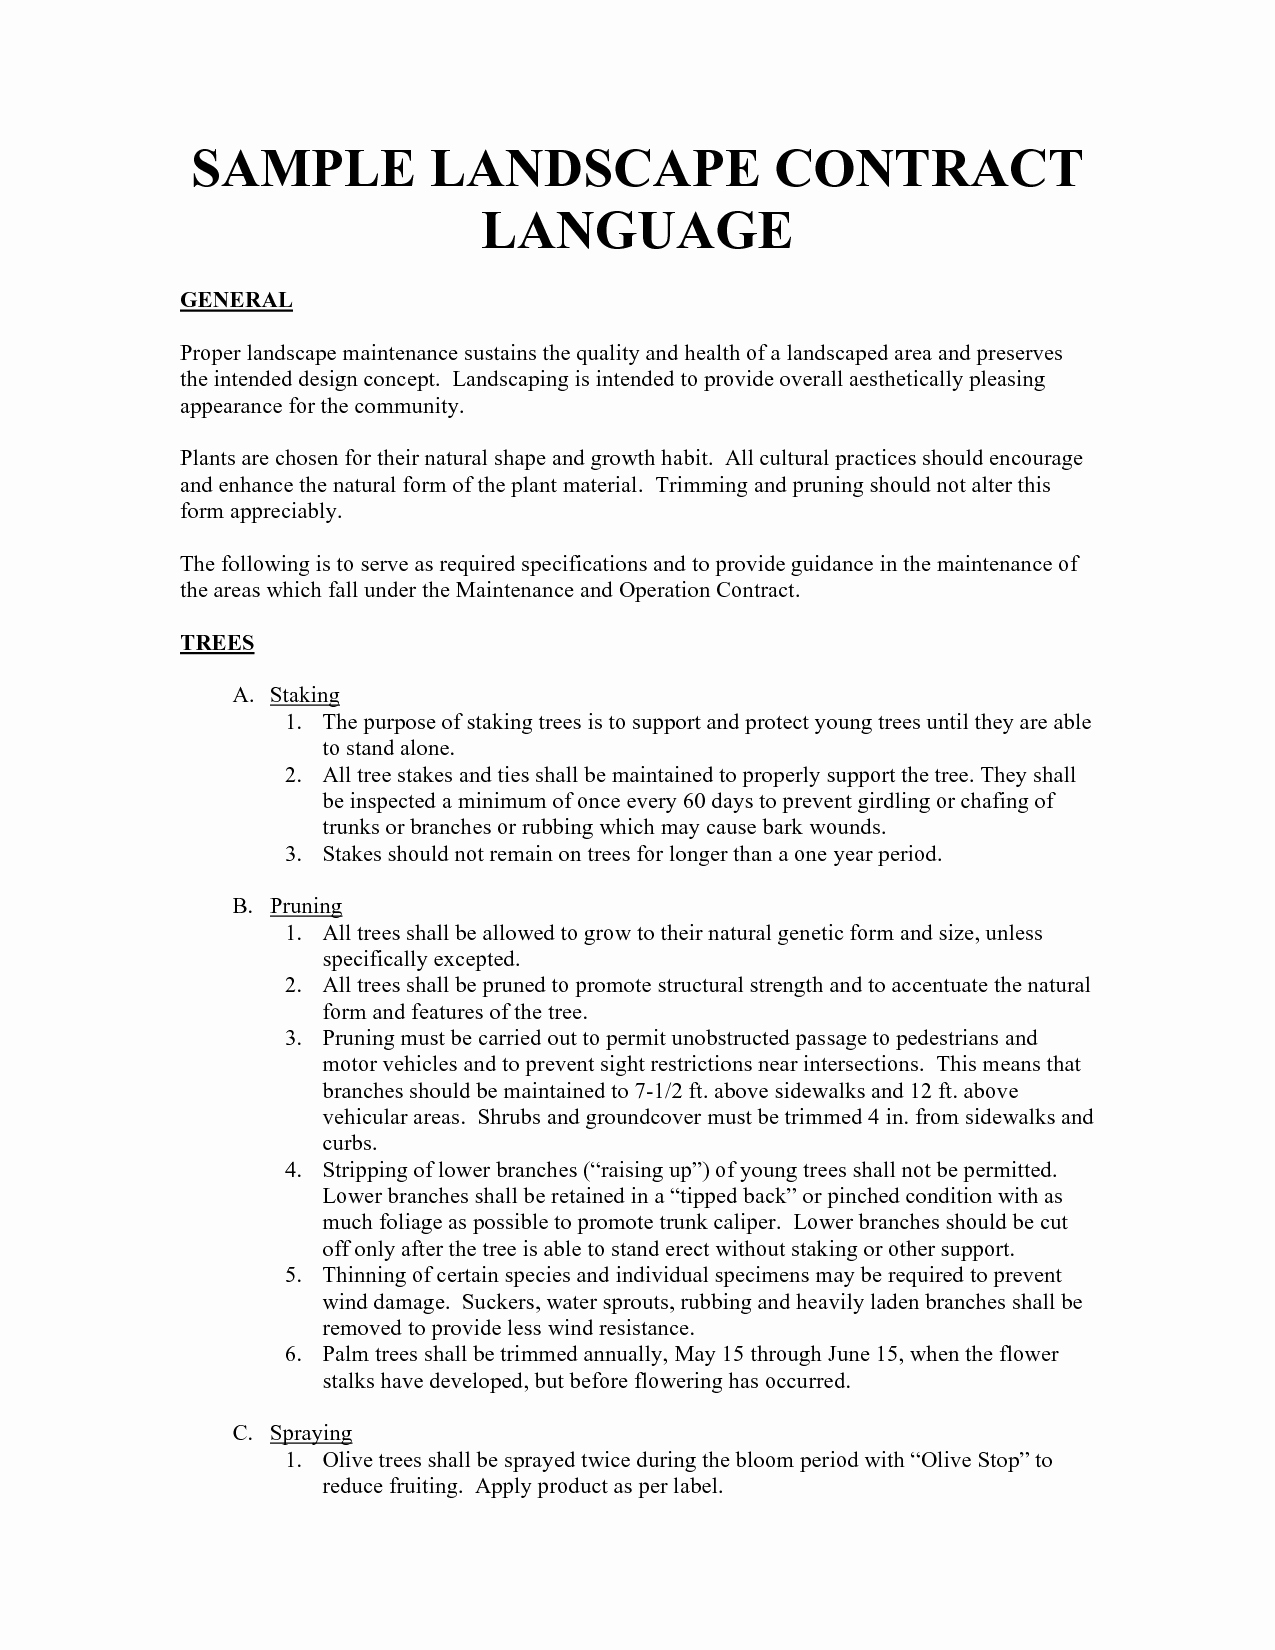 Lawn Service Contract Template Luxury Lawn Service Contracts Templates